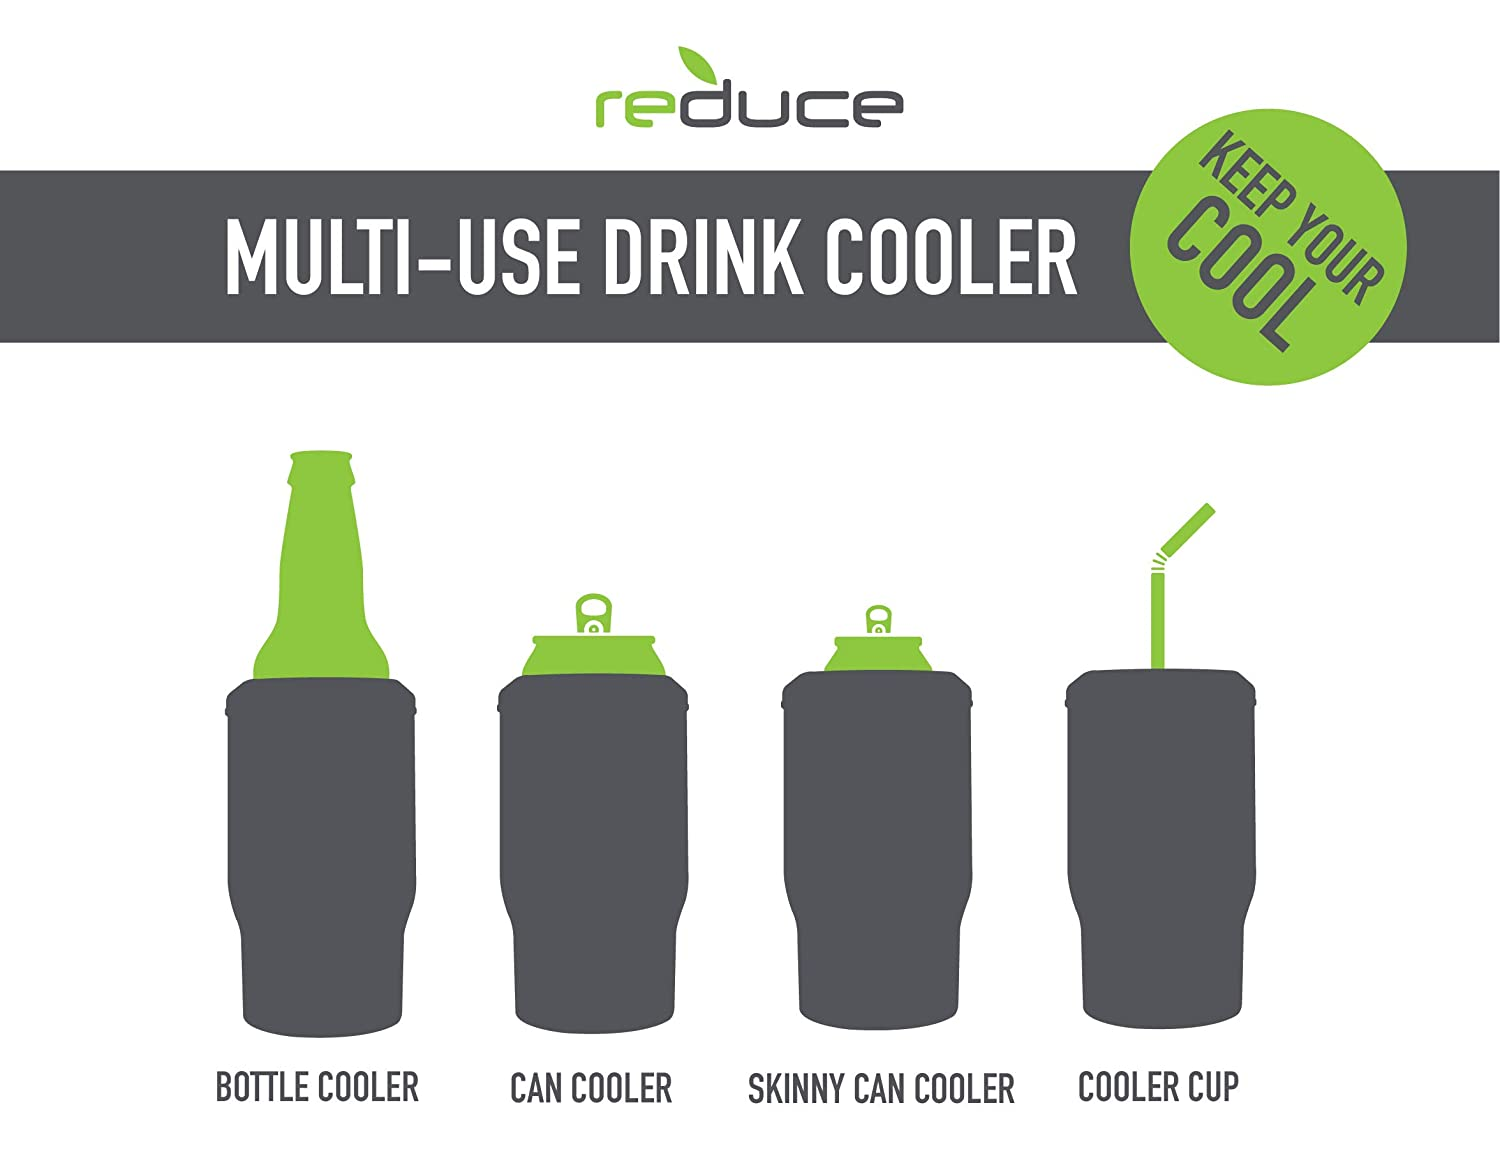 REDUCE Insulated Can Cooler and Bottle Holder – This Stainless Steel Drink Cooler Keeps Cans, Skinny Cans and Bottles Ice Cold – Sweat-Free, Perfect for Tailgating and Parties – Cacti Green 51xeRiawLNL